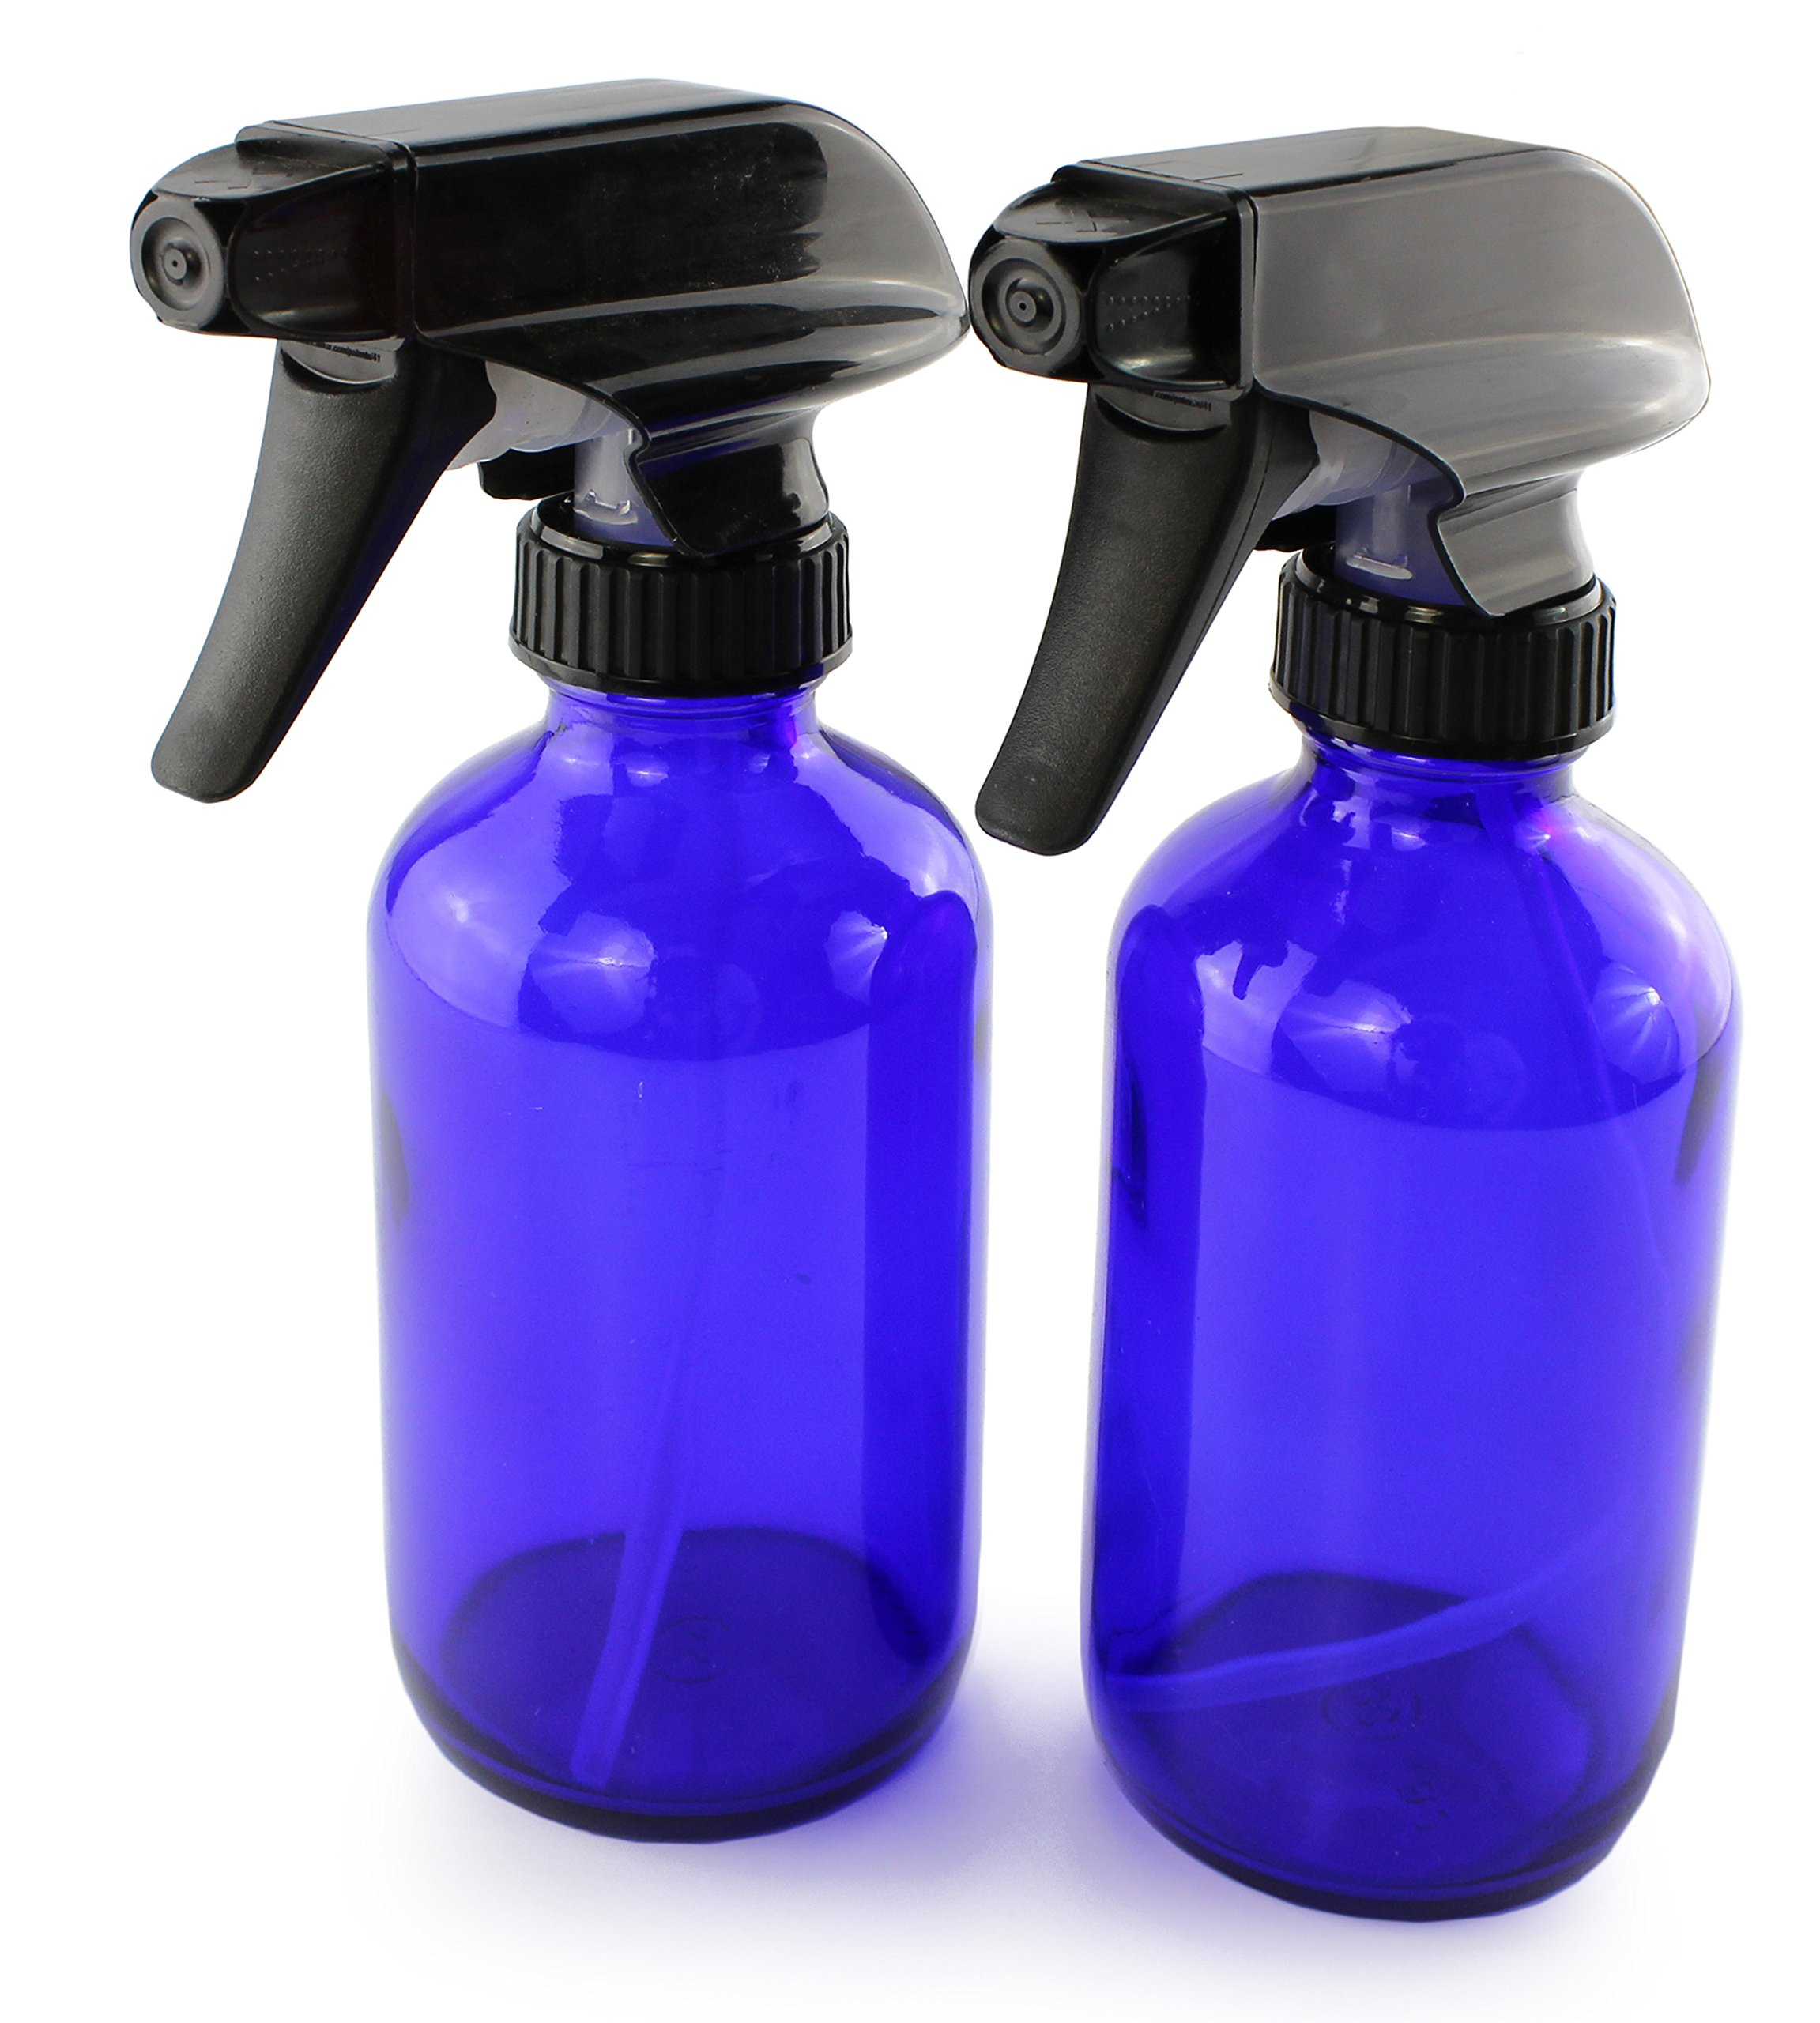 8-Ounce Cobalt Blue Glass Boston Round Spray Bottles (2 Pack) 3-Setting Heavy Duty Sprayers, Empty Refillable Bottle for Essential Oil Blends, DIY Cleaning & More